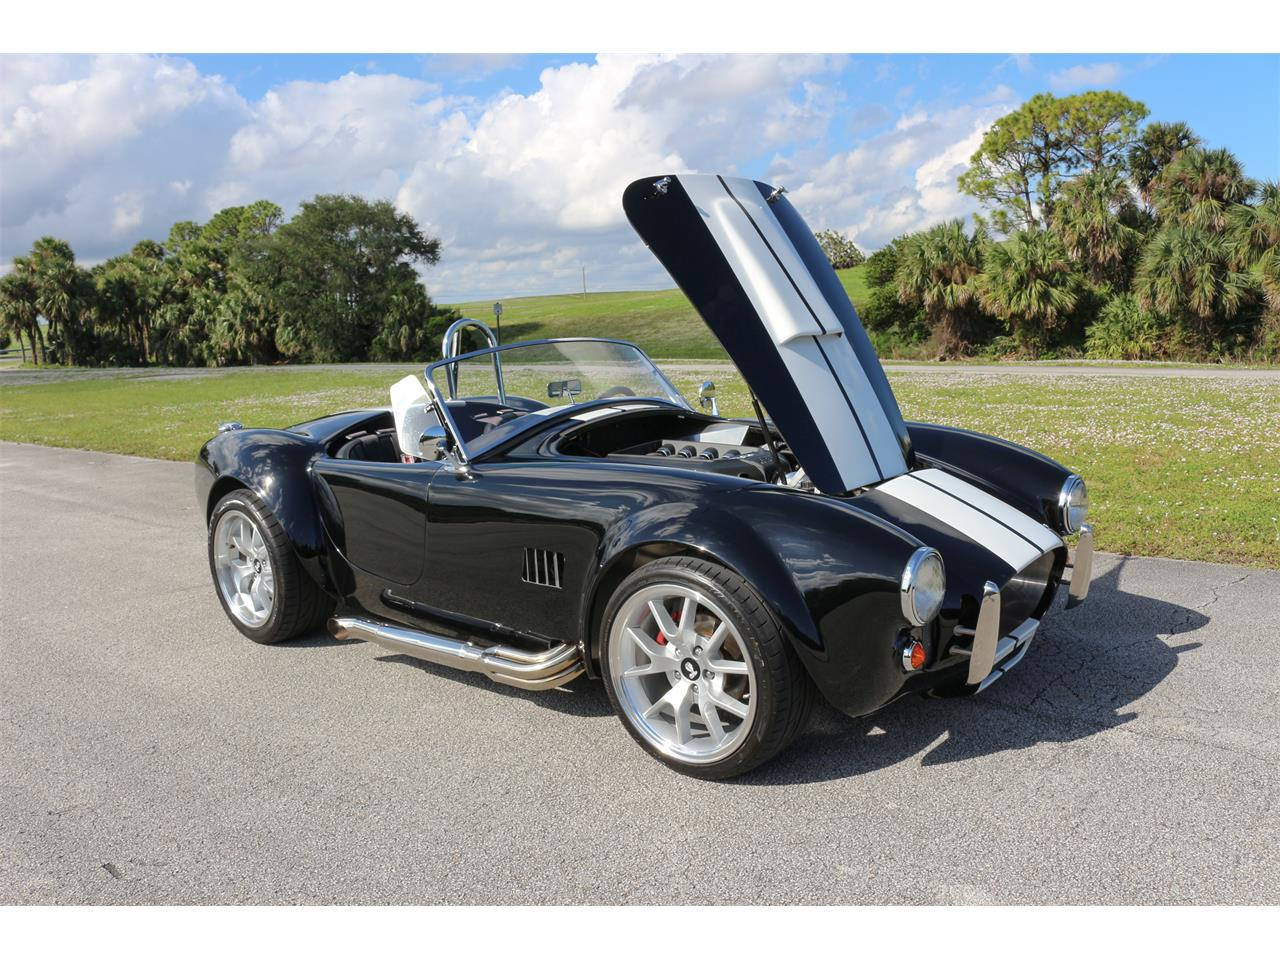 Large Picture of '65 Factory Five Cobra located in Riviera Beach Florida Offered by a Private Seller - MDPC